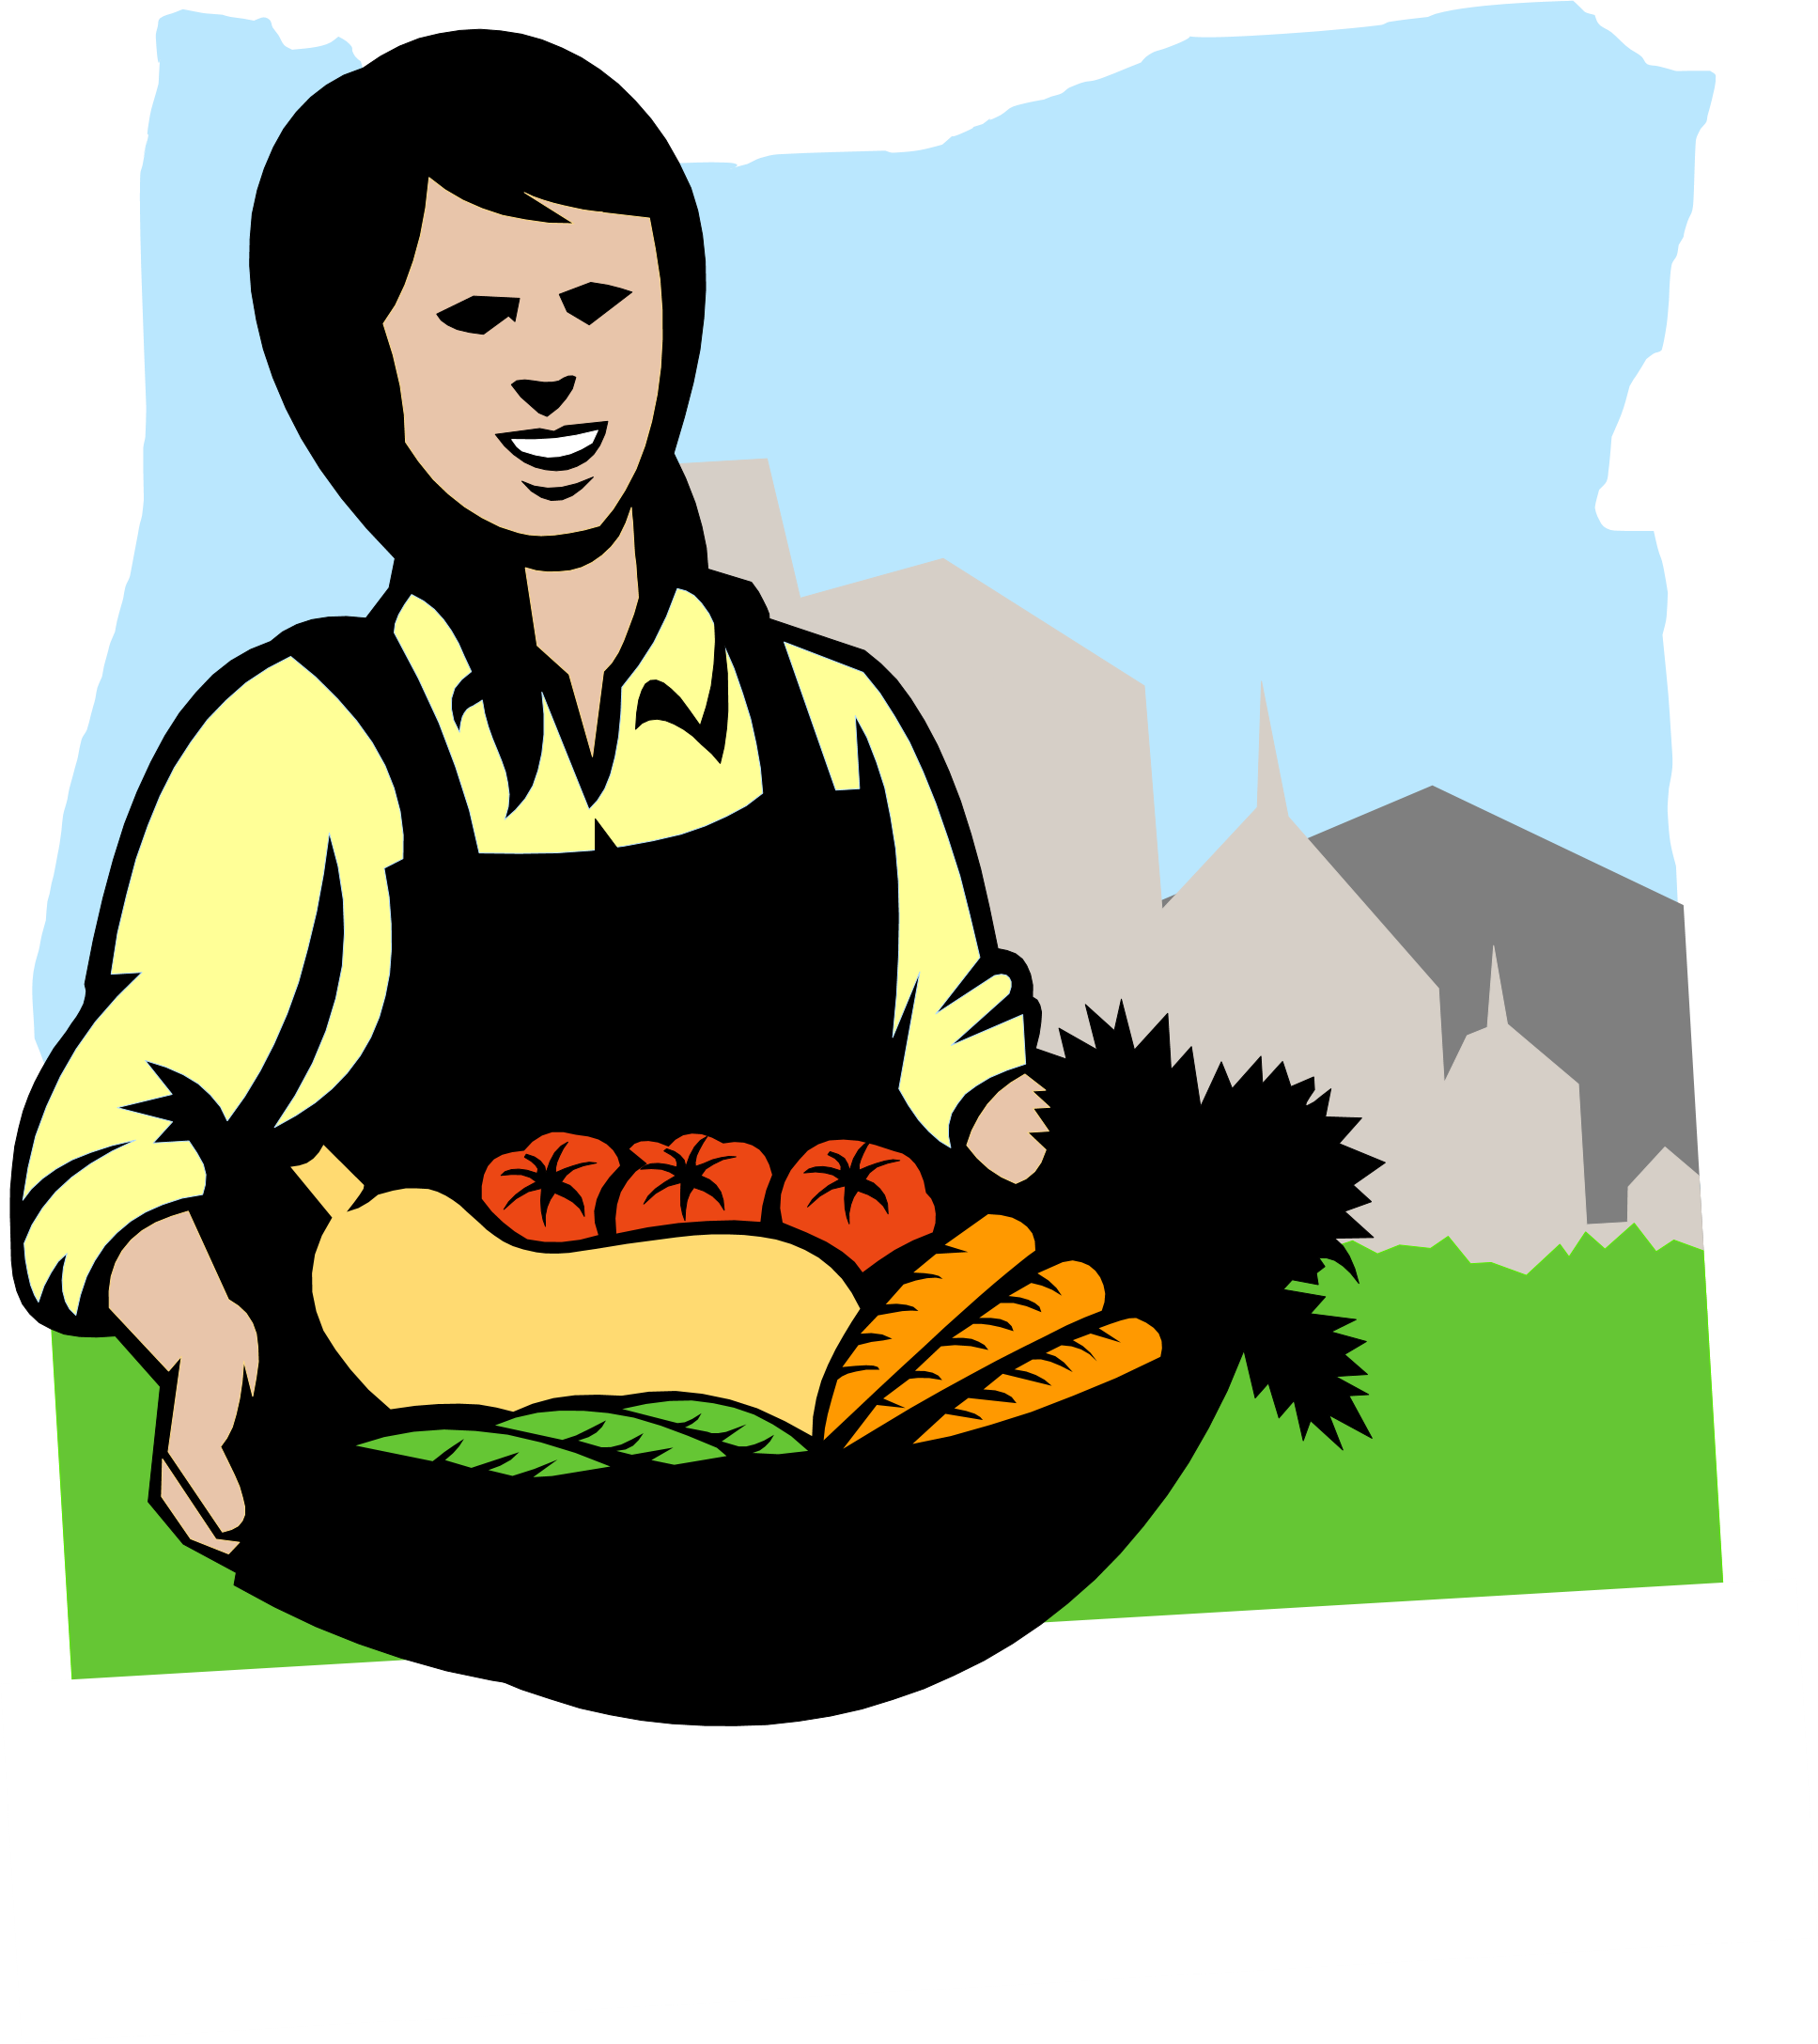 Conference for women in. Farming clipart agricultural activity